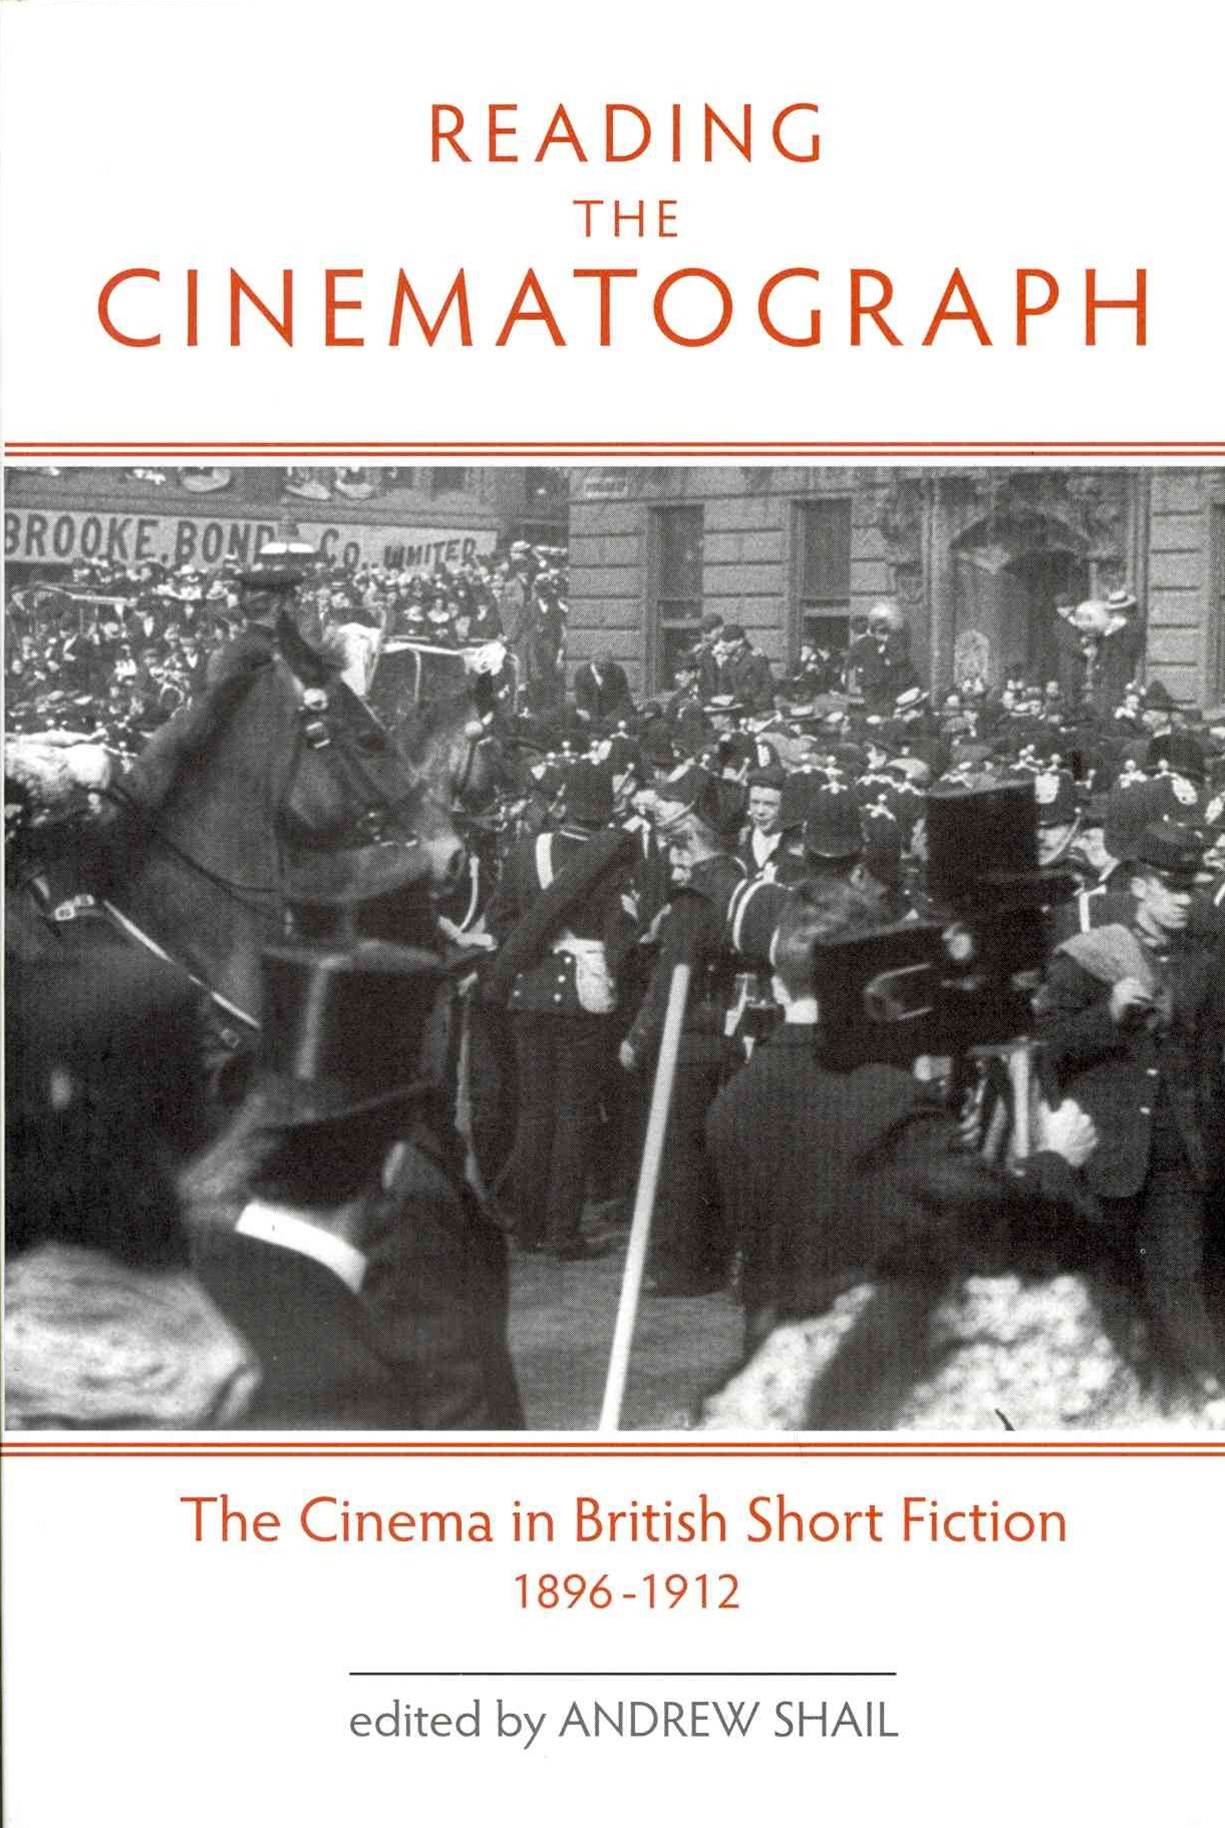 Reading the Cinematograph